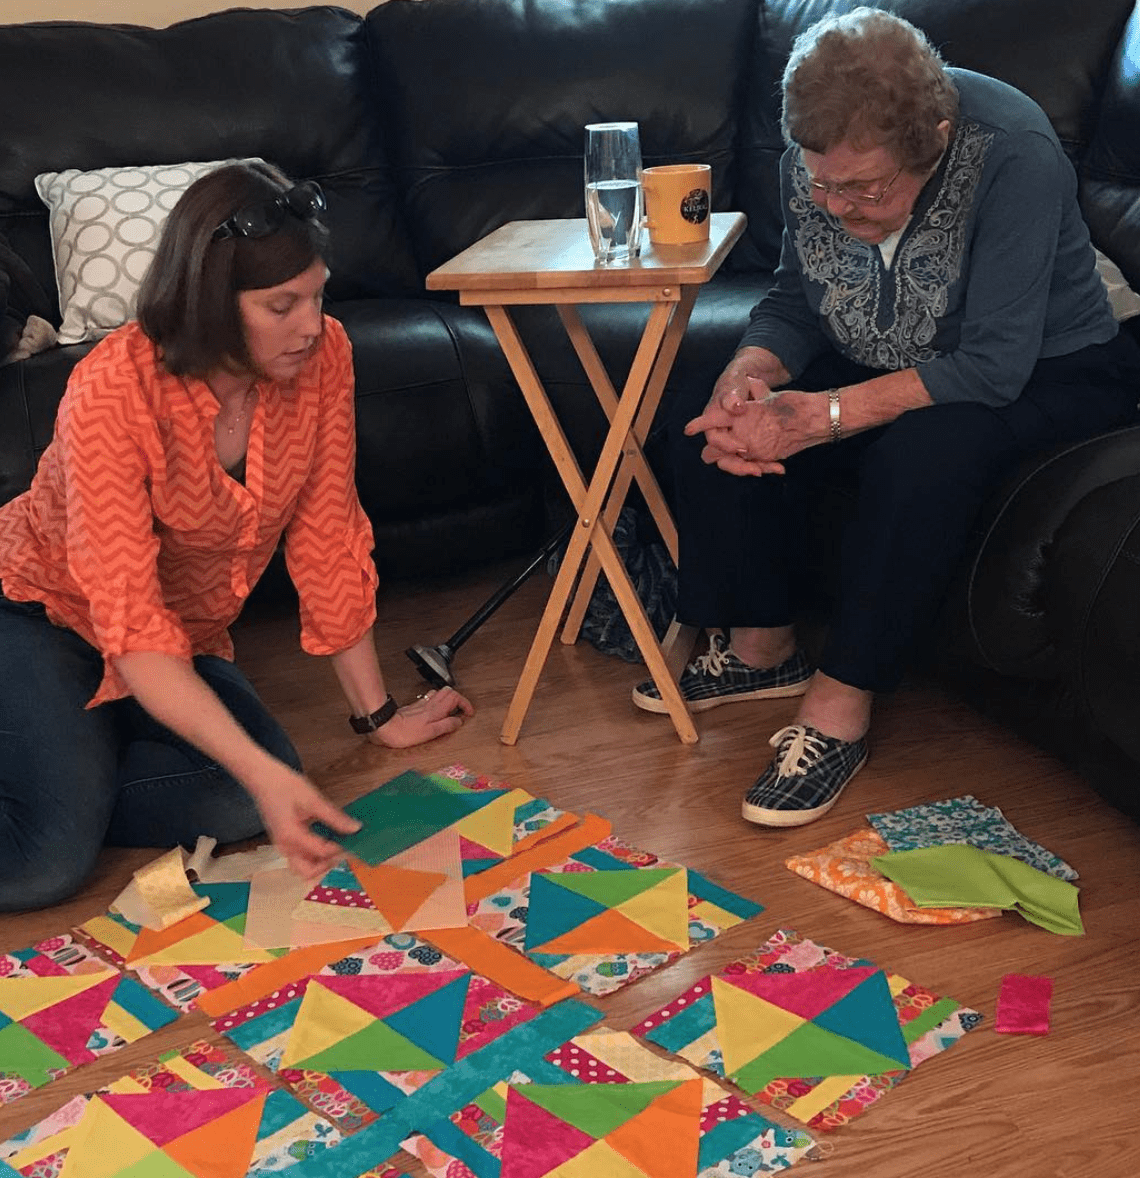 Sharon and Grandma working on quilt